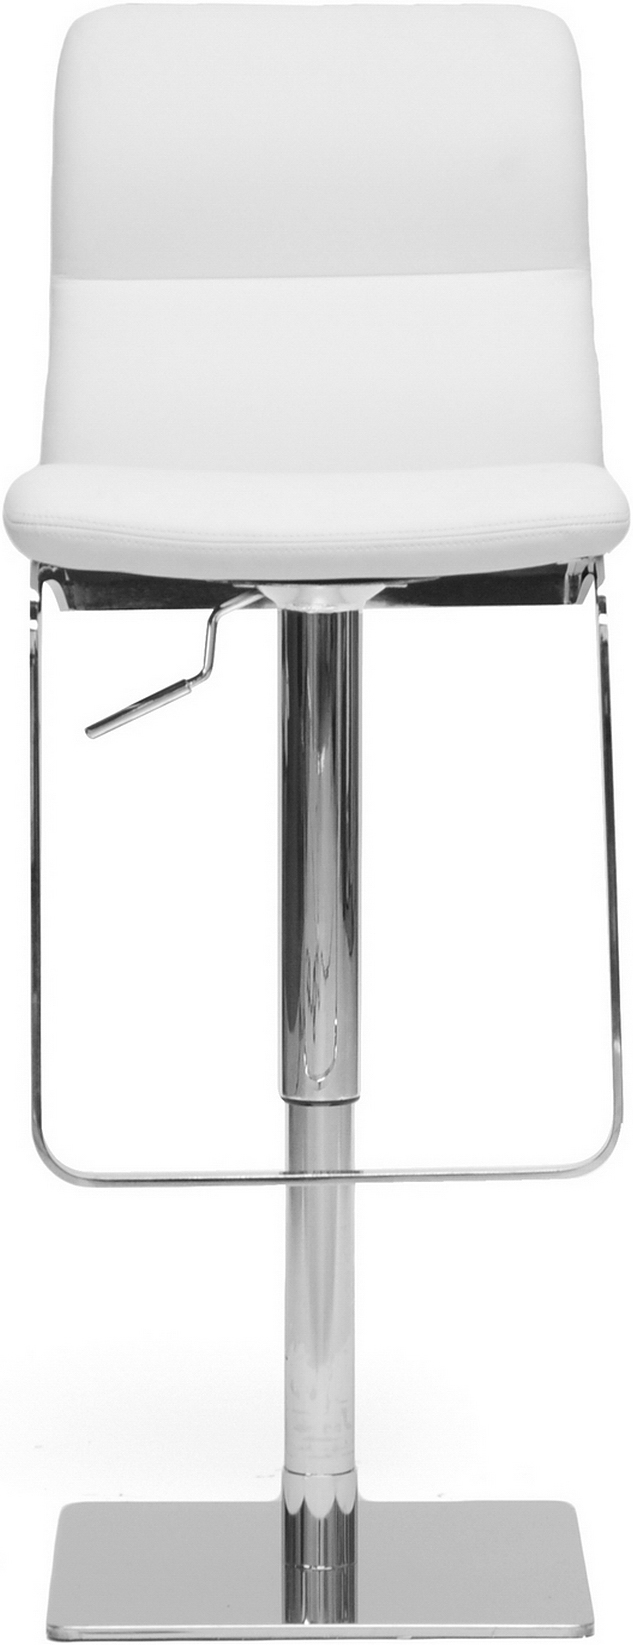 the baxton studio helsinki modern bar stool white